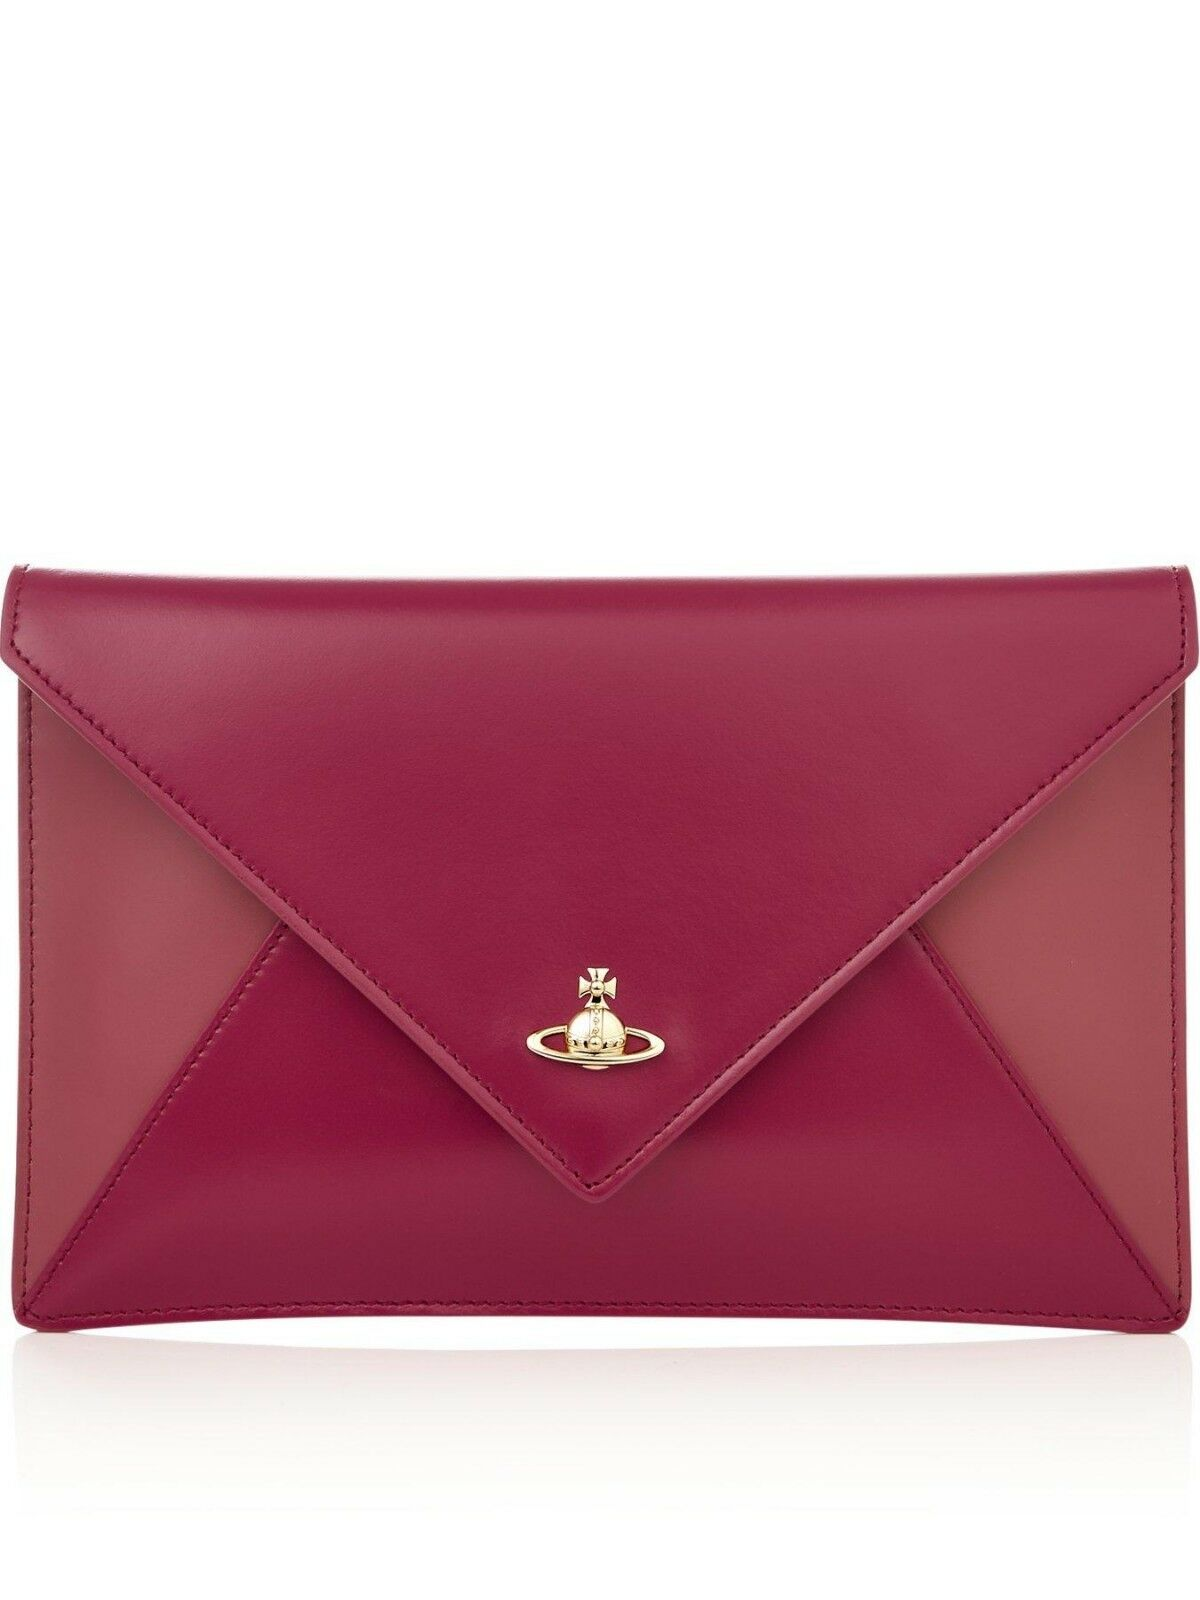 2232a1746 Vivienne Westwood Private Envelope Clutch Bag Red/pink Leather for ...